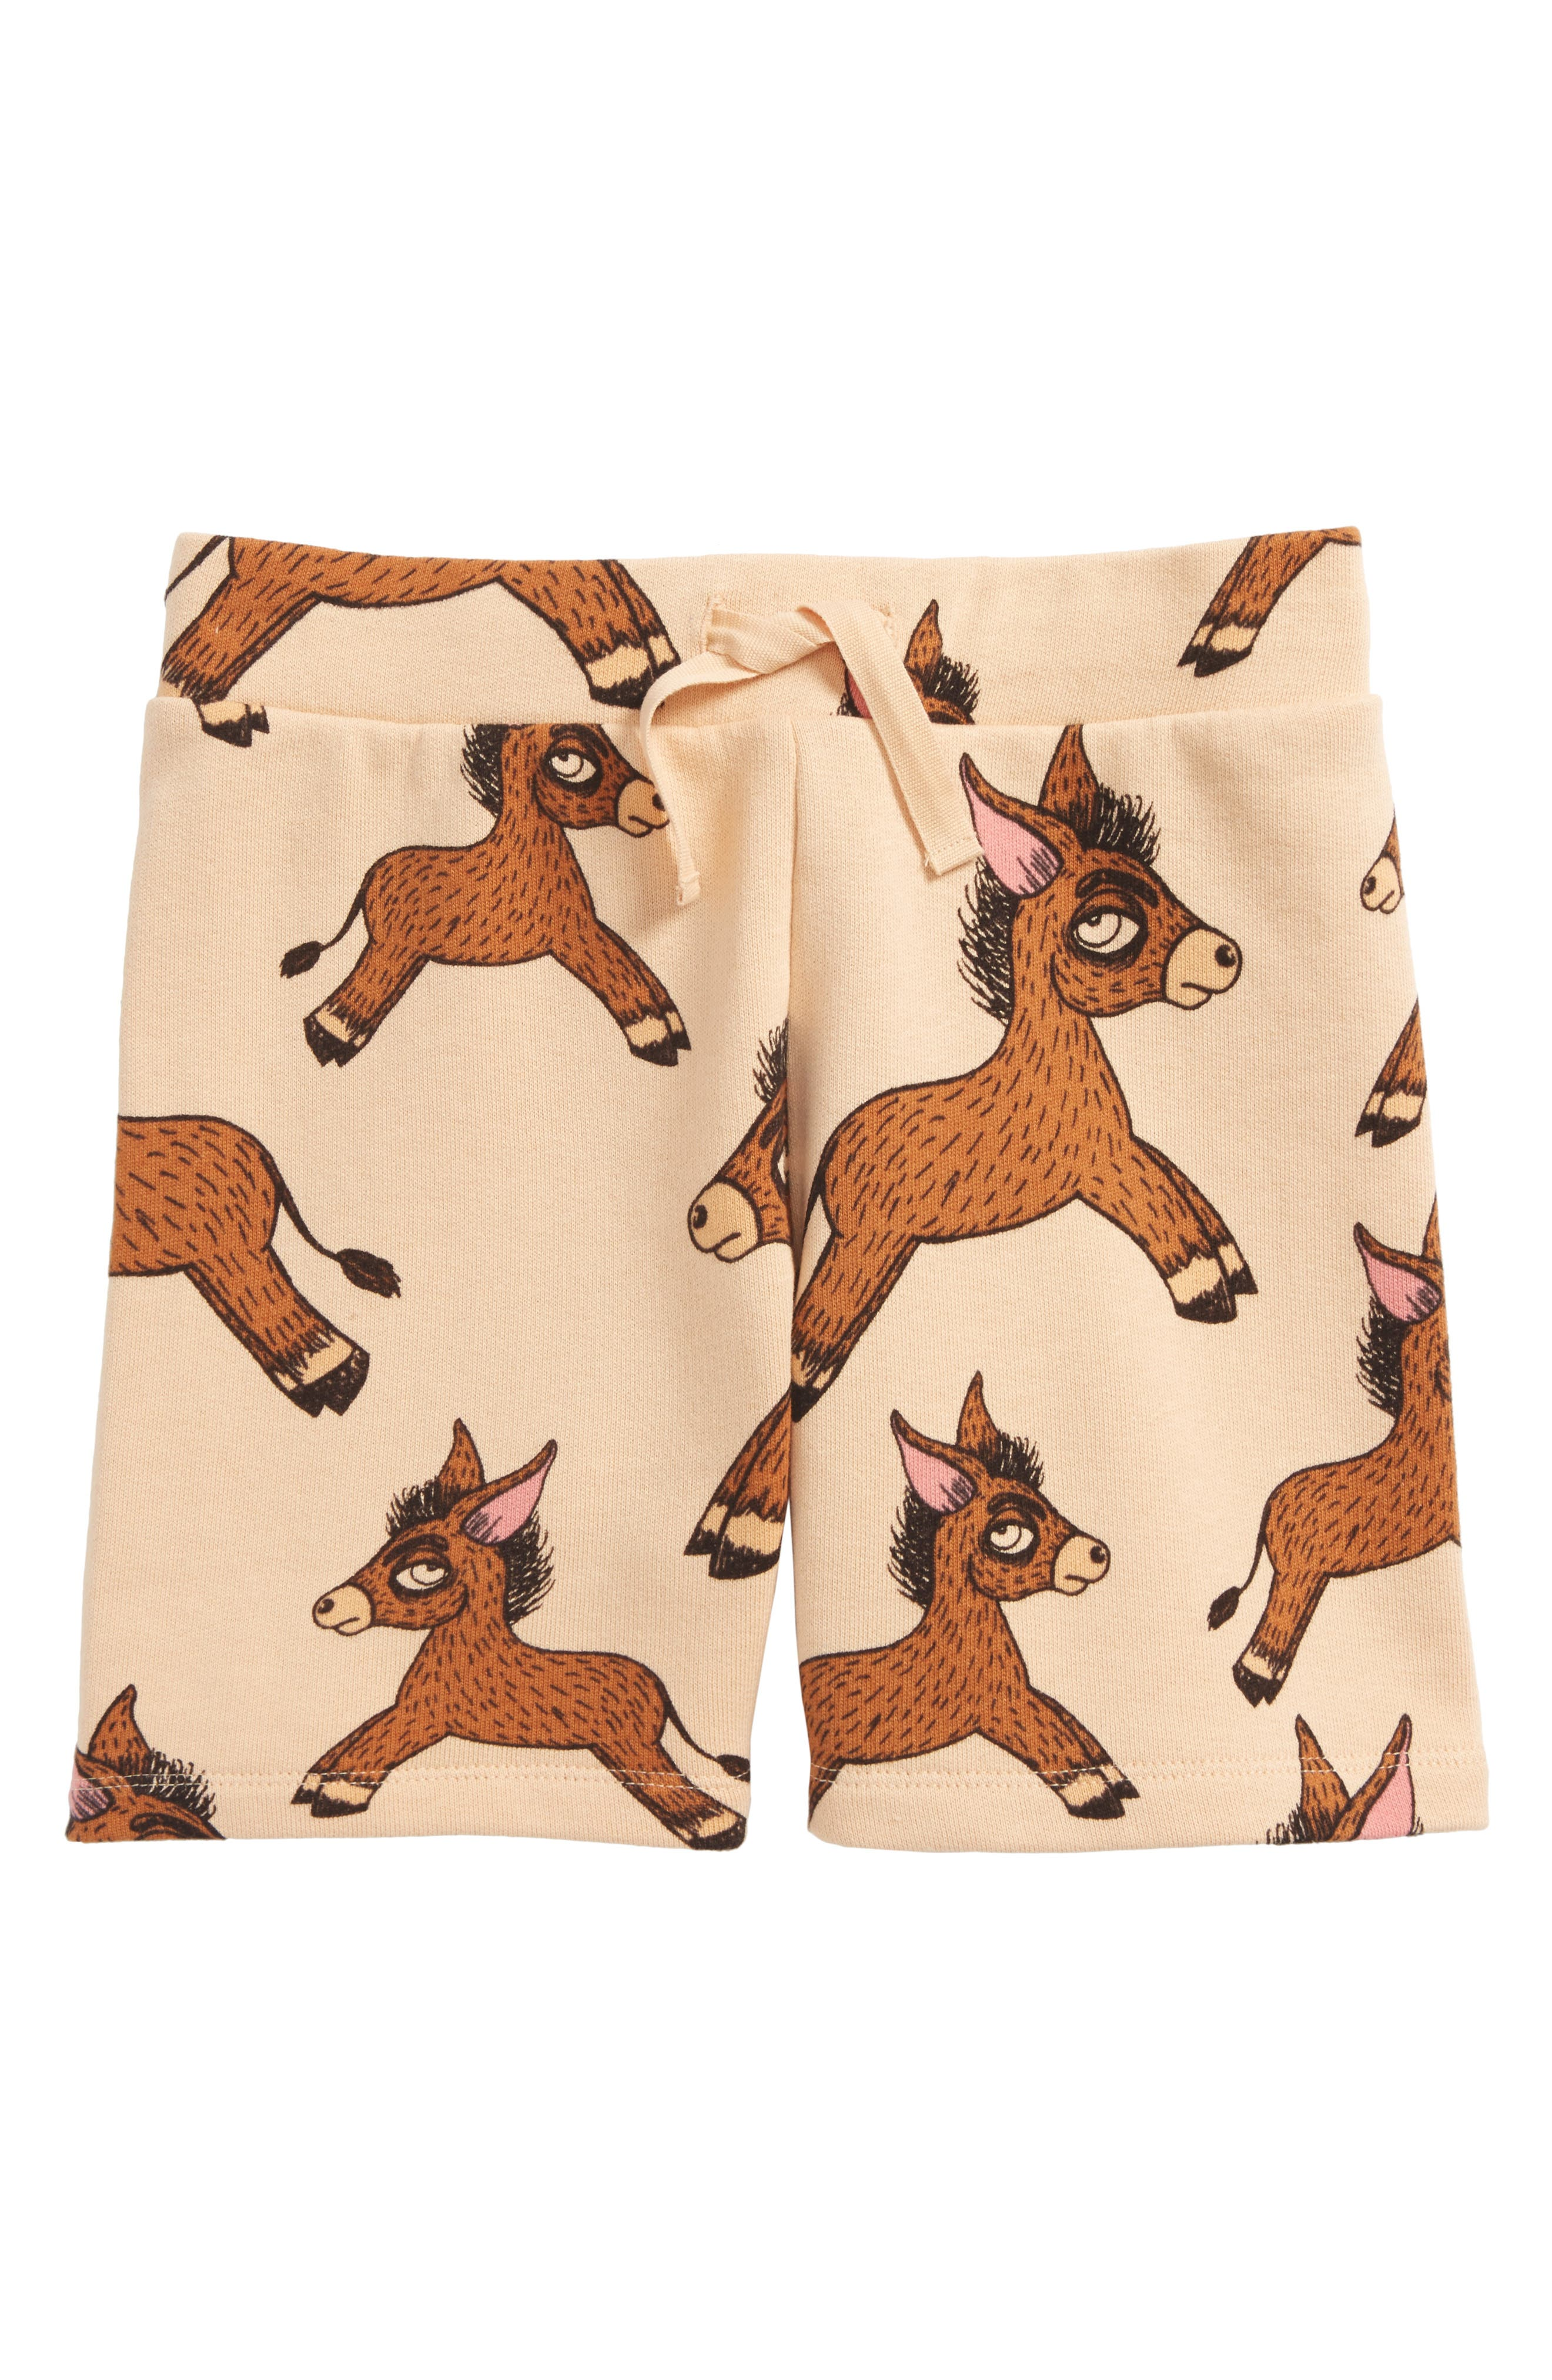 Donkey Print Organic Cotton Sweat Shorts,                         Main,                         color, Beige